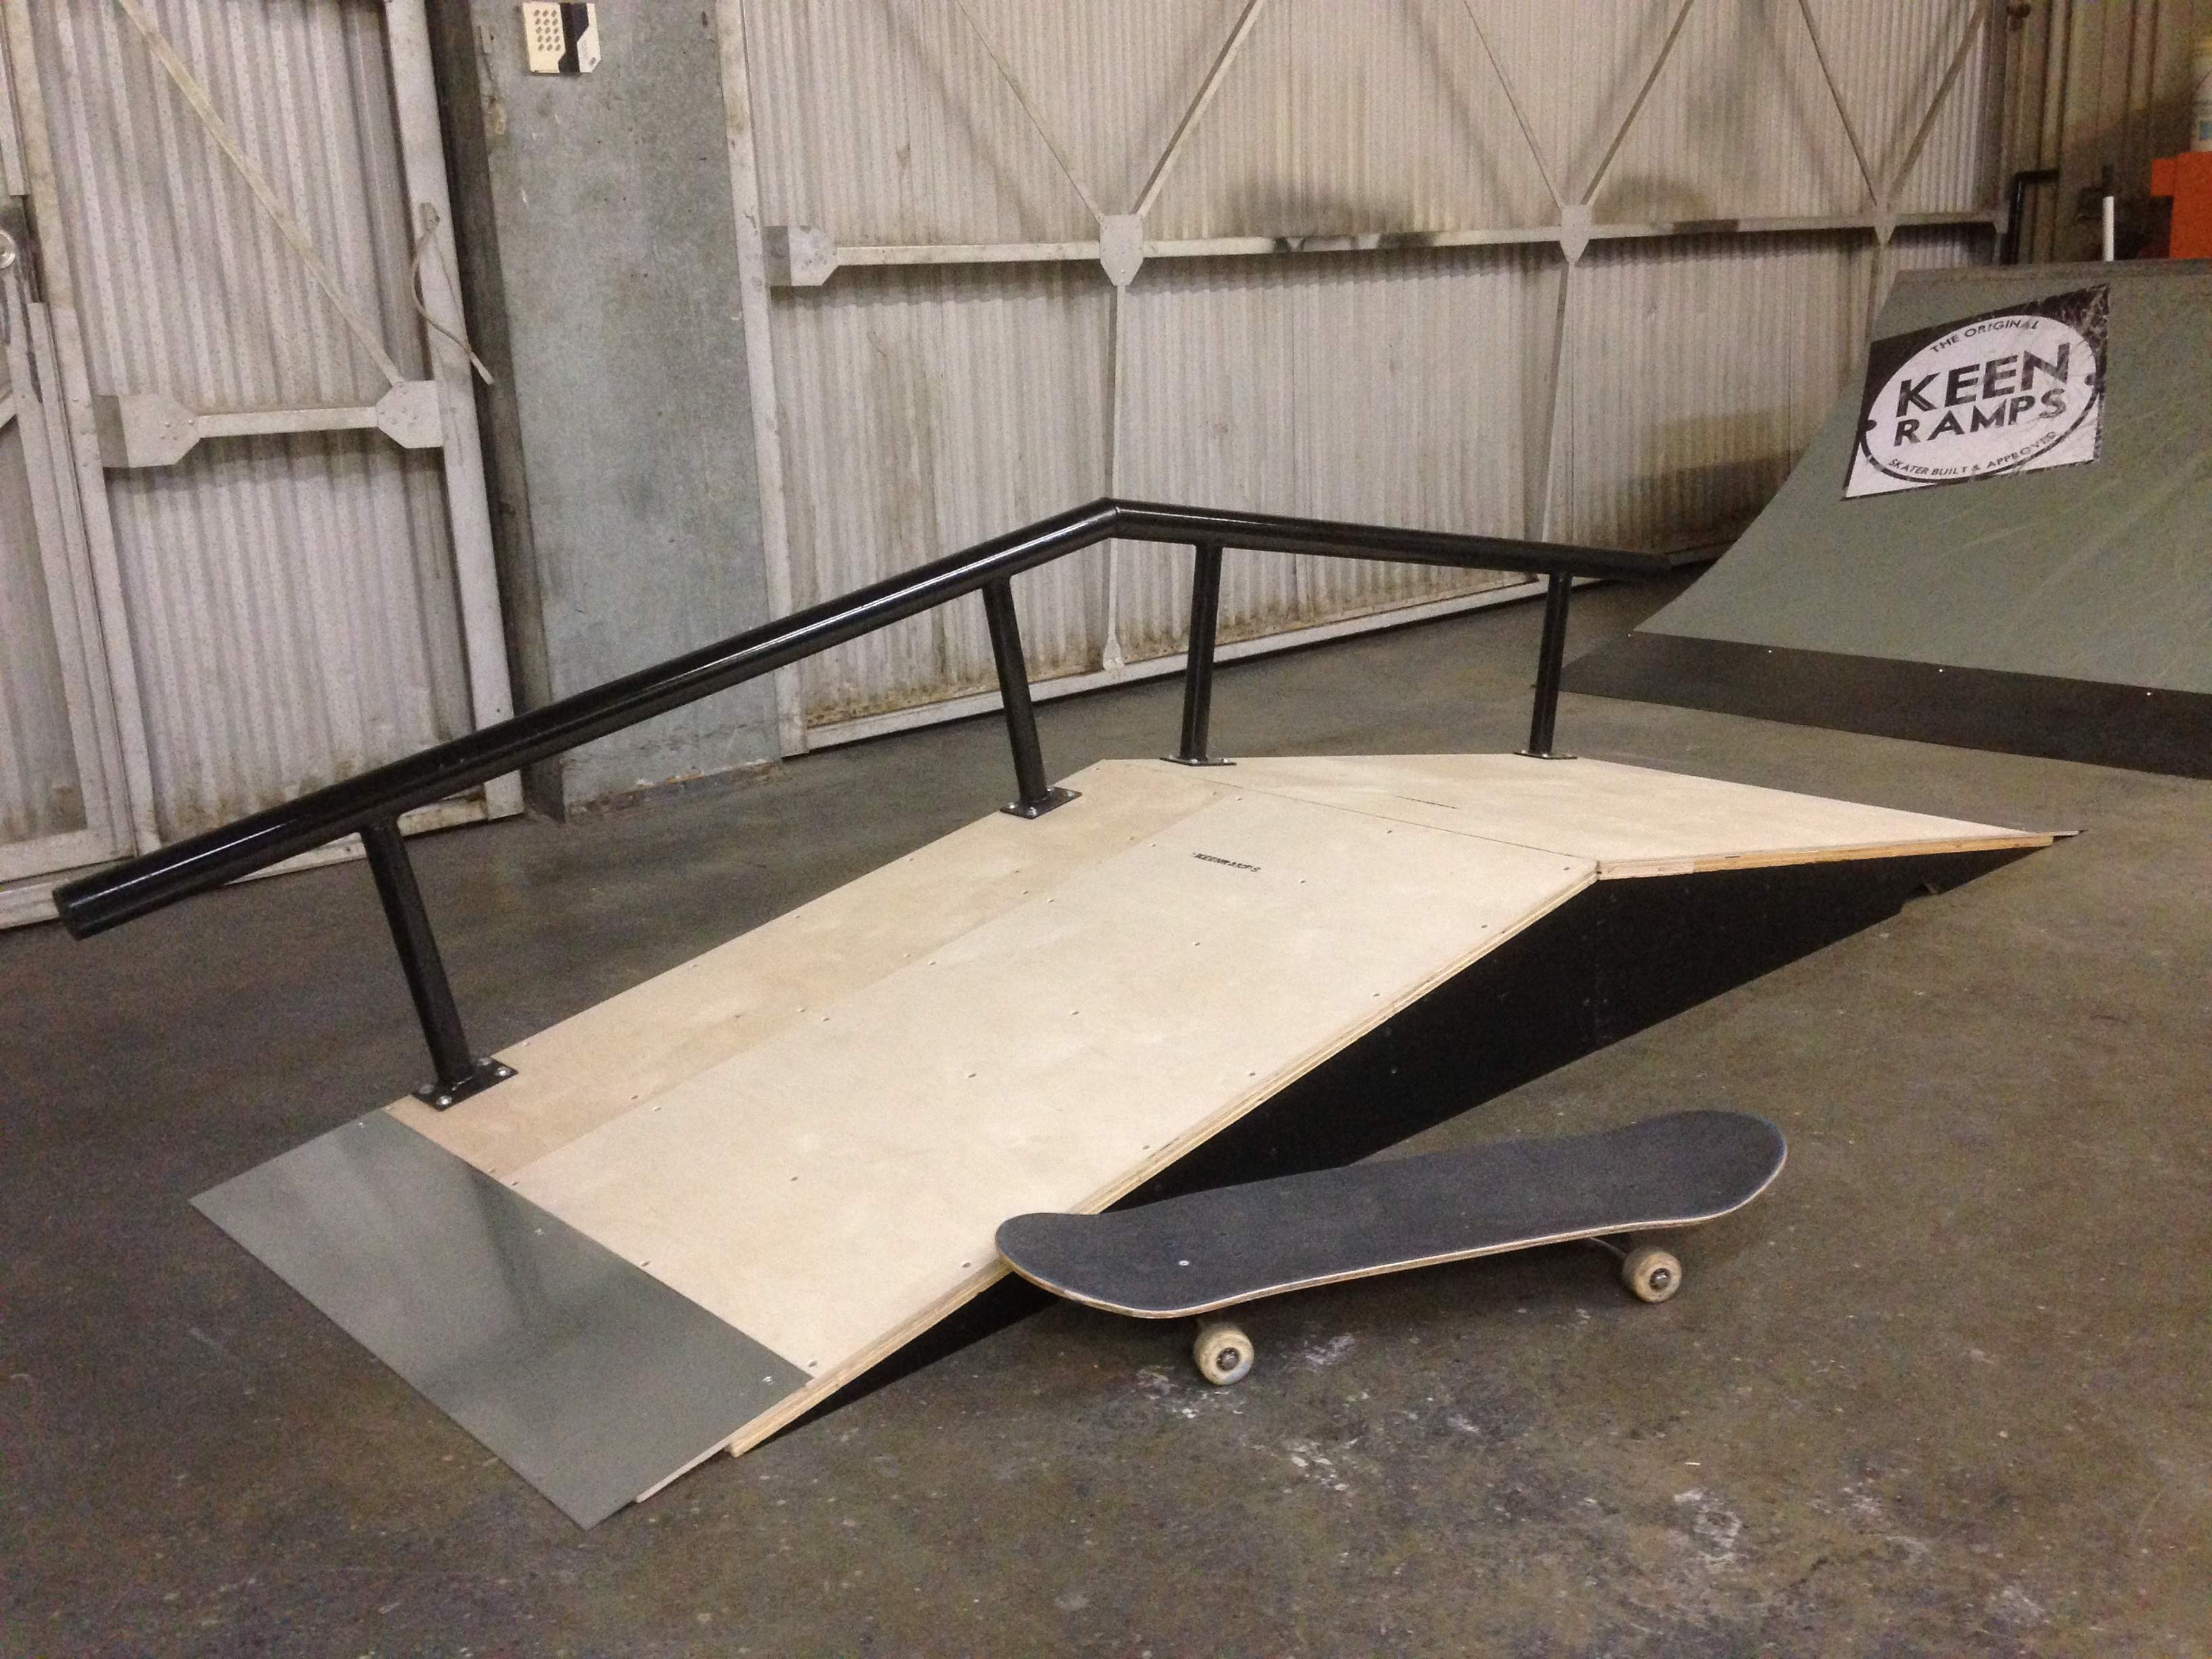 Skateboard Picture Frame ramps and rails 91565: manny santiago's bump to rail skateboard